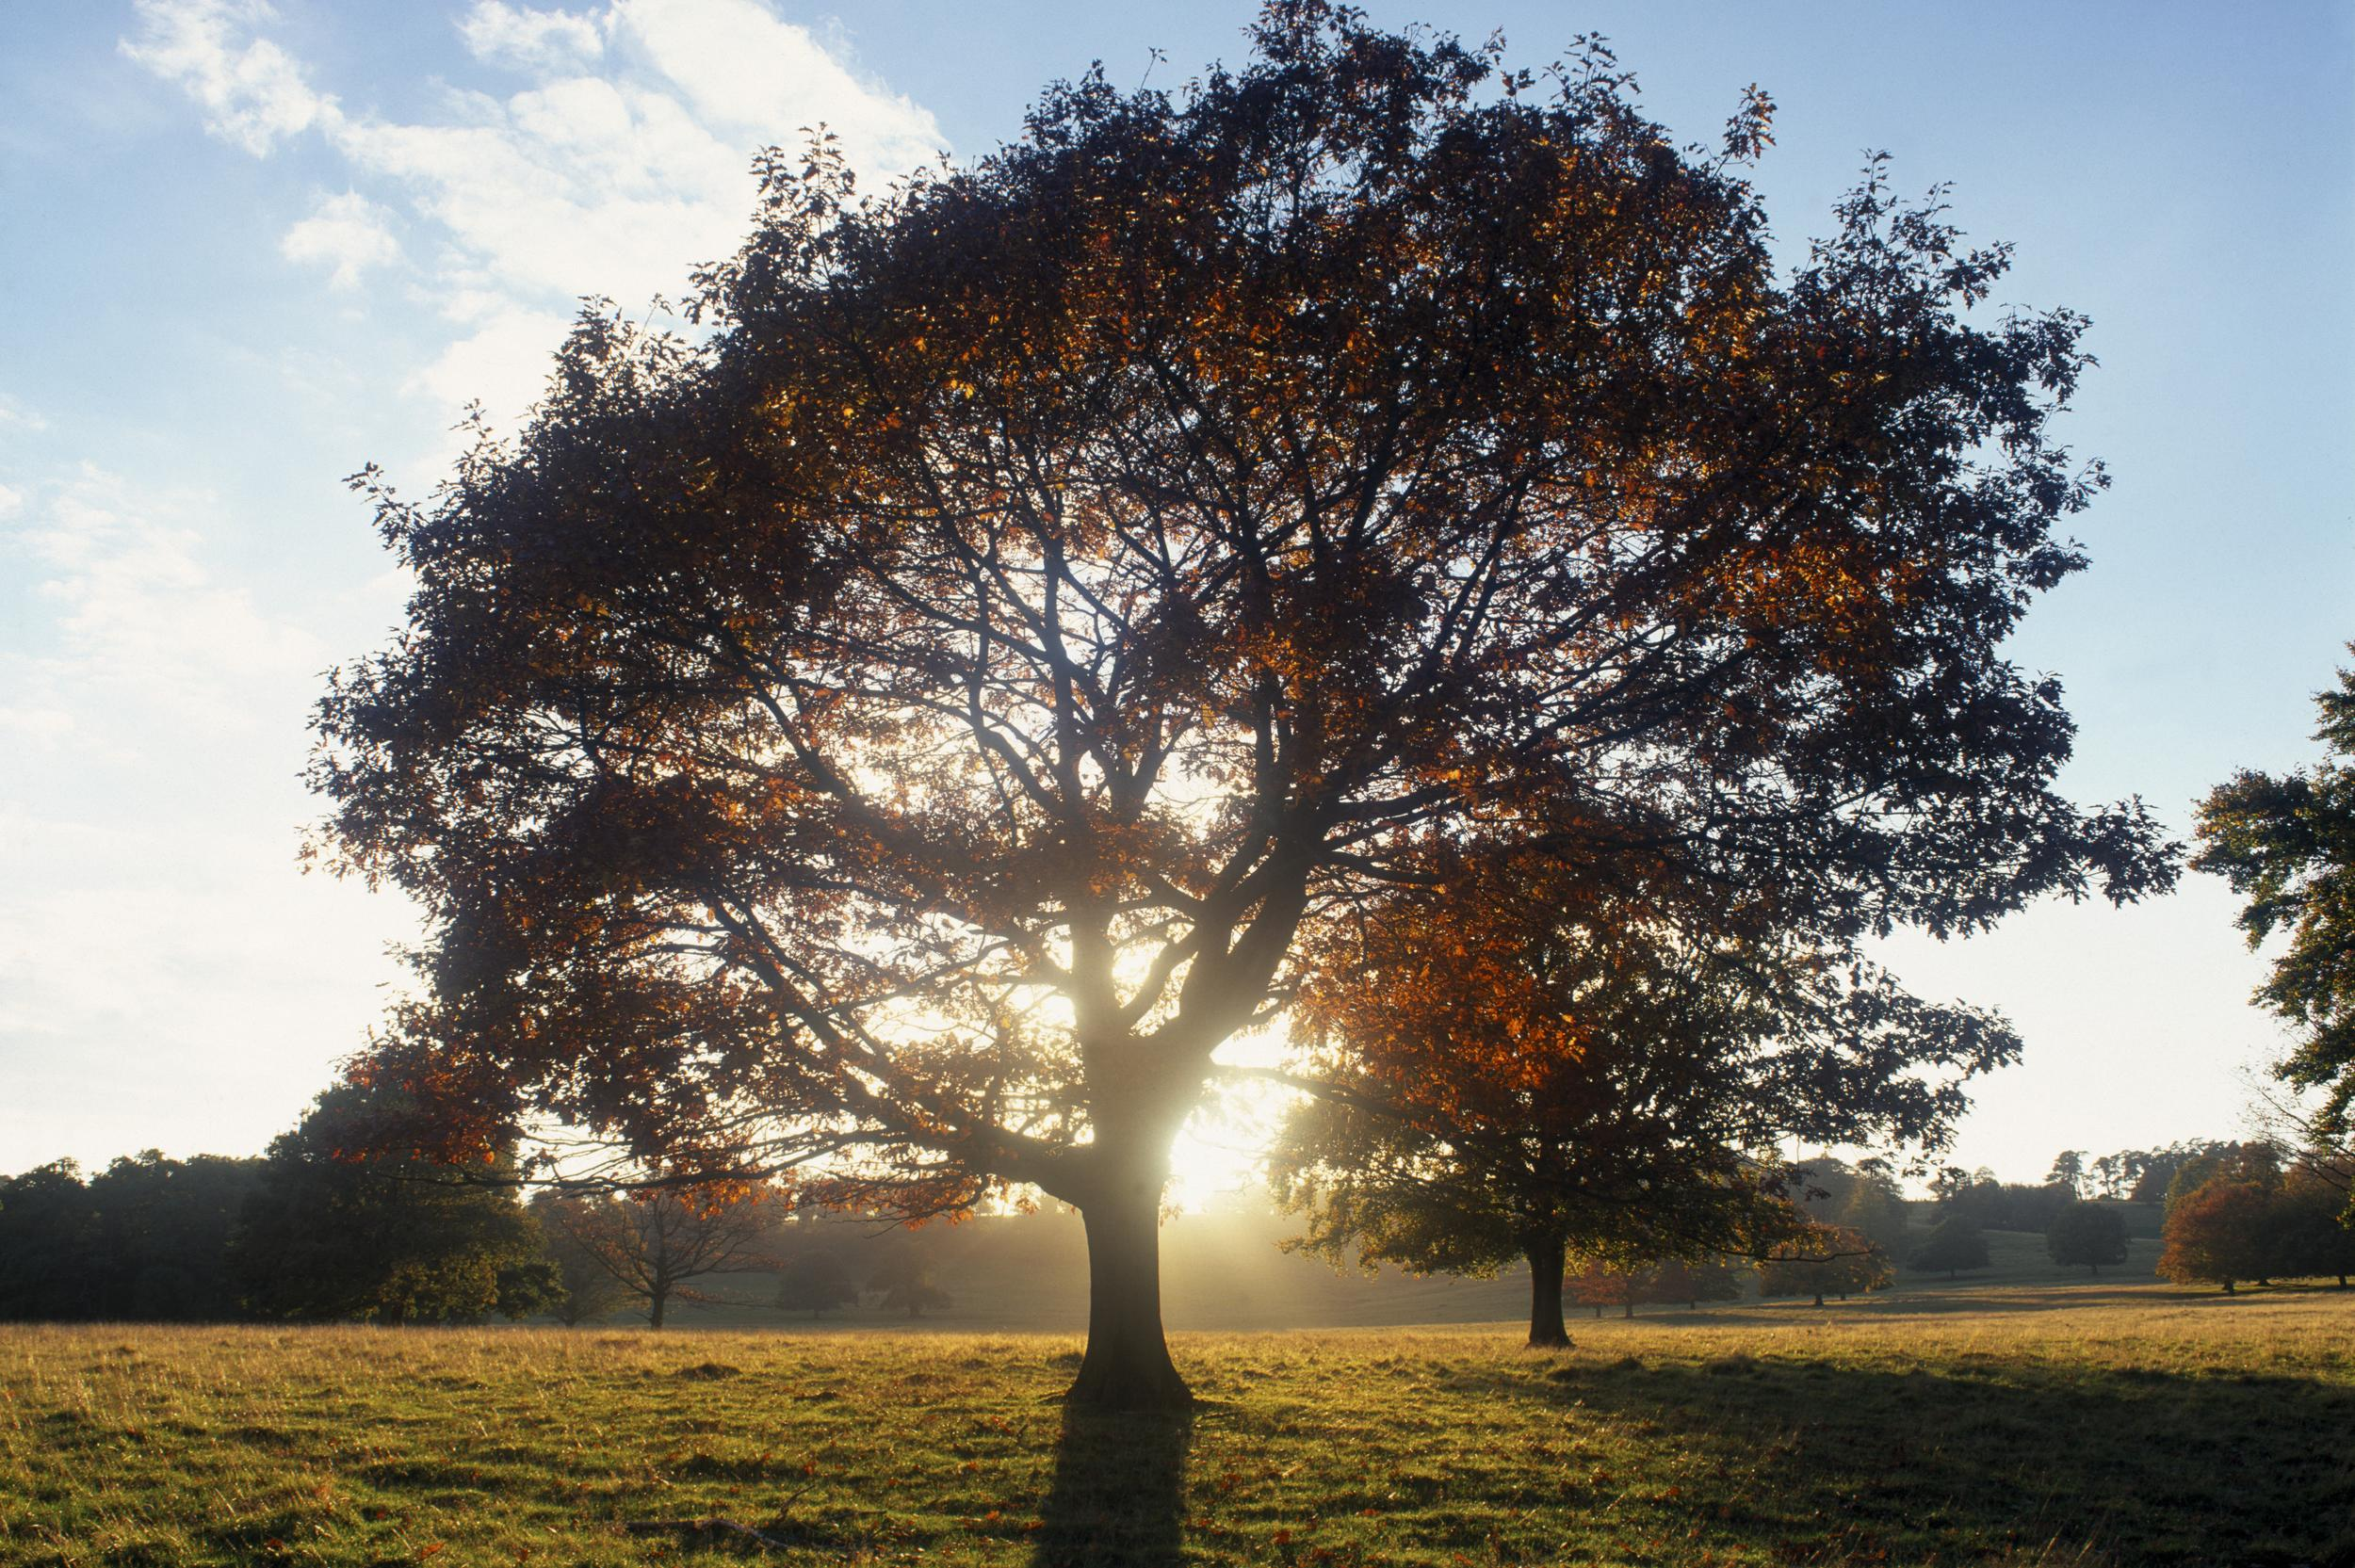 """<p style=""""font-size:14.4444446563721px;"""">The<a href=""""http://www.nationaltrust.org.uk/petworthautumnwalk"""" target=""""_blank"""">Petworth House and Park ancient trees walk</a>takes in abeautiful deer park landscaped by 'Capability' was the inspiration for the great landscape painter, J.M.W. Turner.In autumn, the woodlands and grasslands transform slowly from green to gold. The magnificent oaks, limes, beeches and chestnuts create canopies of buttery-gold foliage and at the centre of the deer park stands an English oak tree with golden leaves that has stood overlooking the estate for almost 1000 years.In the evening light, the setting sun bathes the mansion in a warm yellow glow, whilst its windows shine gold and red.In early autumn, the parkland is often transformed into a savannah-type landscape – a golden expanse of tall waving grasses and seed heads. Peter Richards, Volunteer Gardener for the National Trust, says: """"Everywhere you look in the park there is something to cheer you up. It's a treescape going through a transition in colour as summer turns to autumn.""""</p>  <p style=""""font-size:14.4444446563721px;""""></p>"""